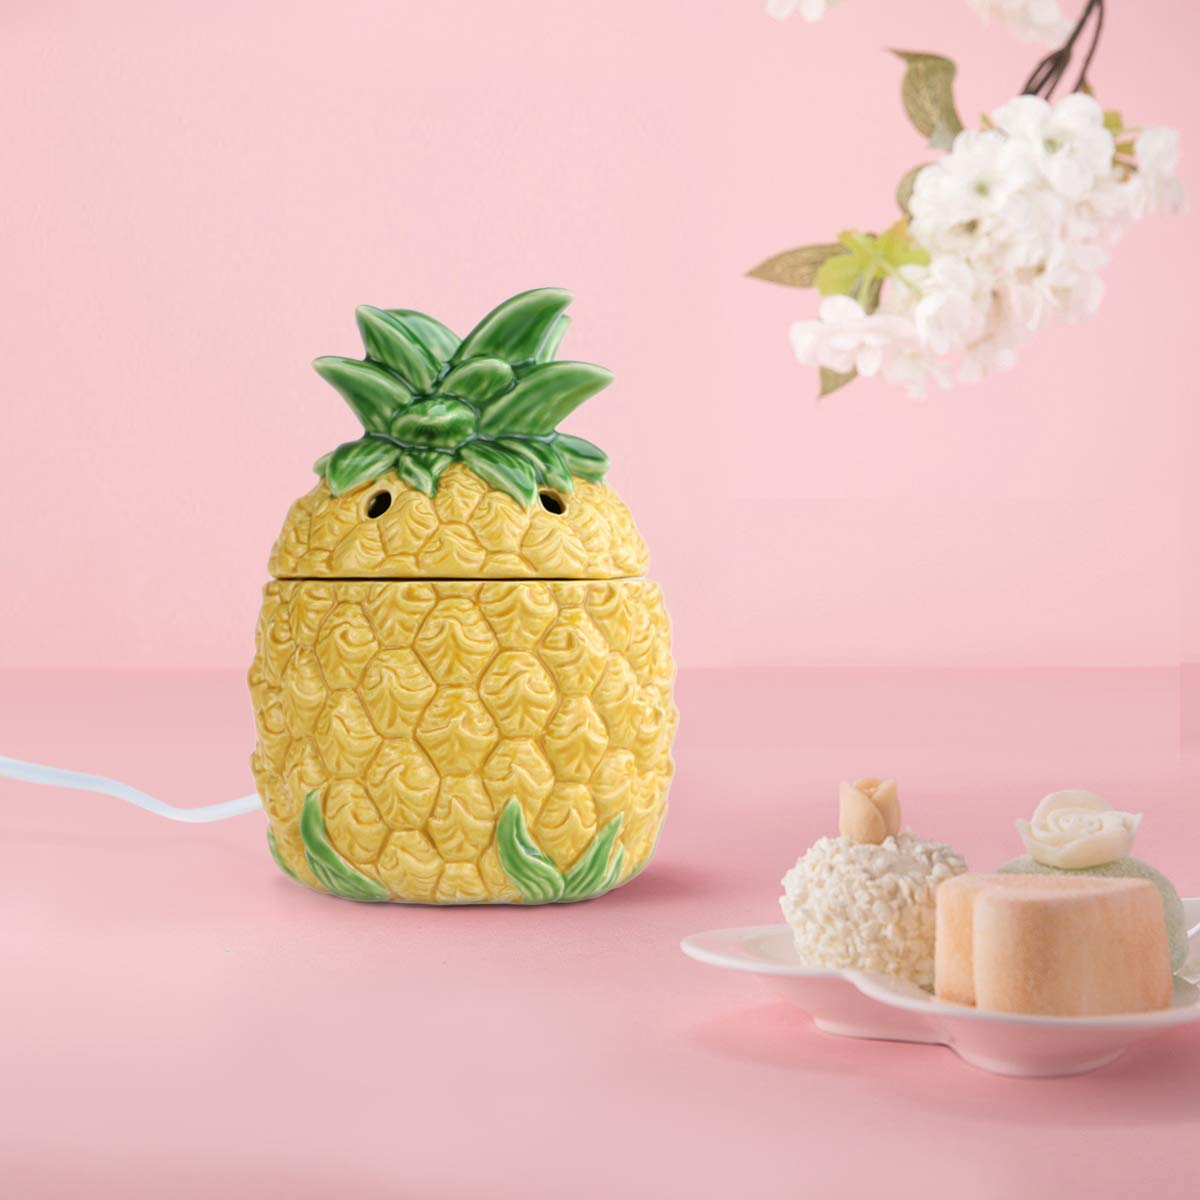 STAR MOON Wax Melt Warmer Electric, Candle Warmer for Wax Melt, Home Fragrance Diffuser, Home Décor, No Flame, with Ceramic Warming Plate (Pineapple) by STAR MOON (Image #3)